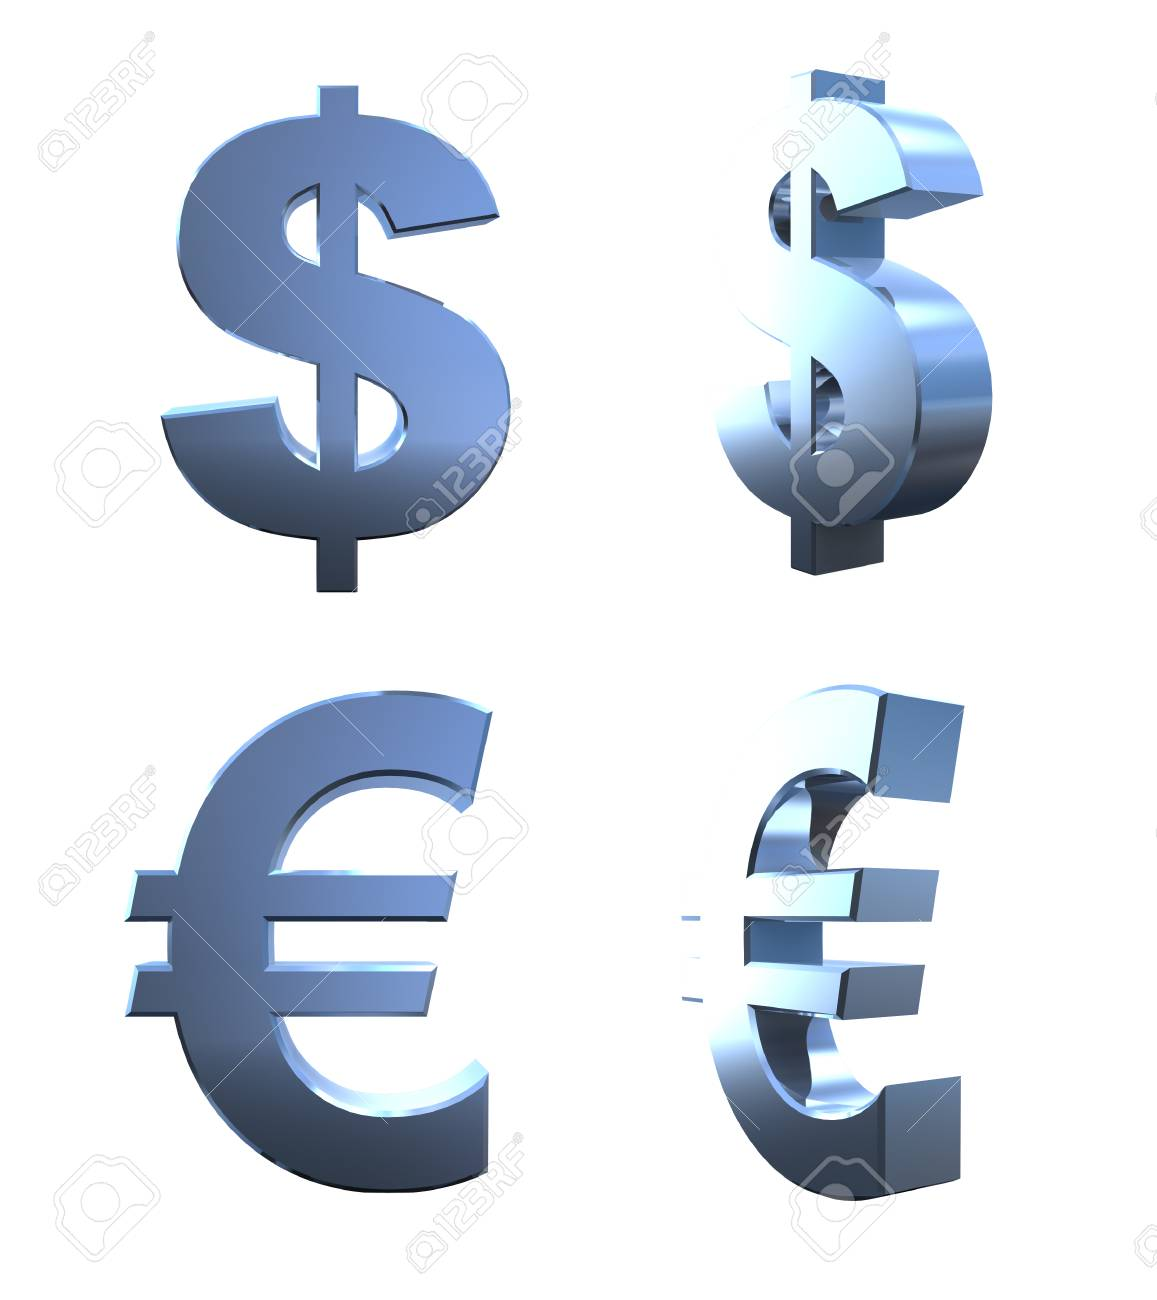 3d Dollar And Euro Currency Symbols Stock Photo Picture And Royalty